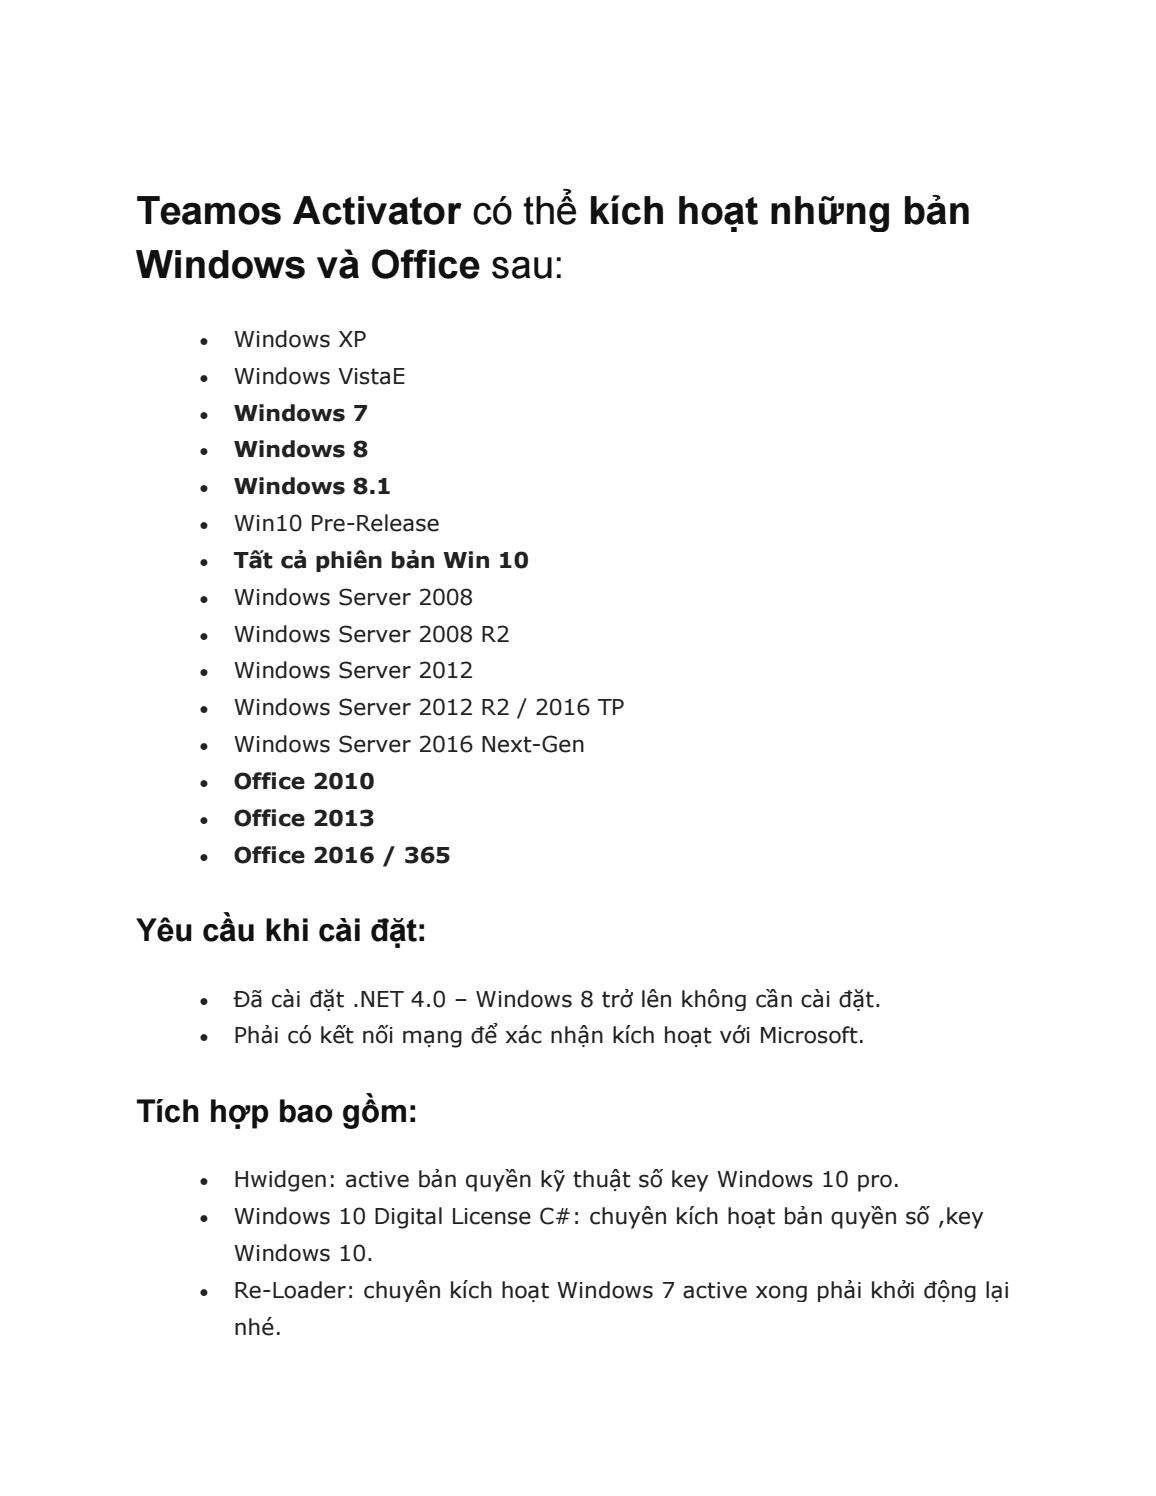 Crack All Windows And Microsoft Office - Teamos Activator by I Cong